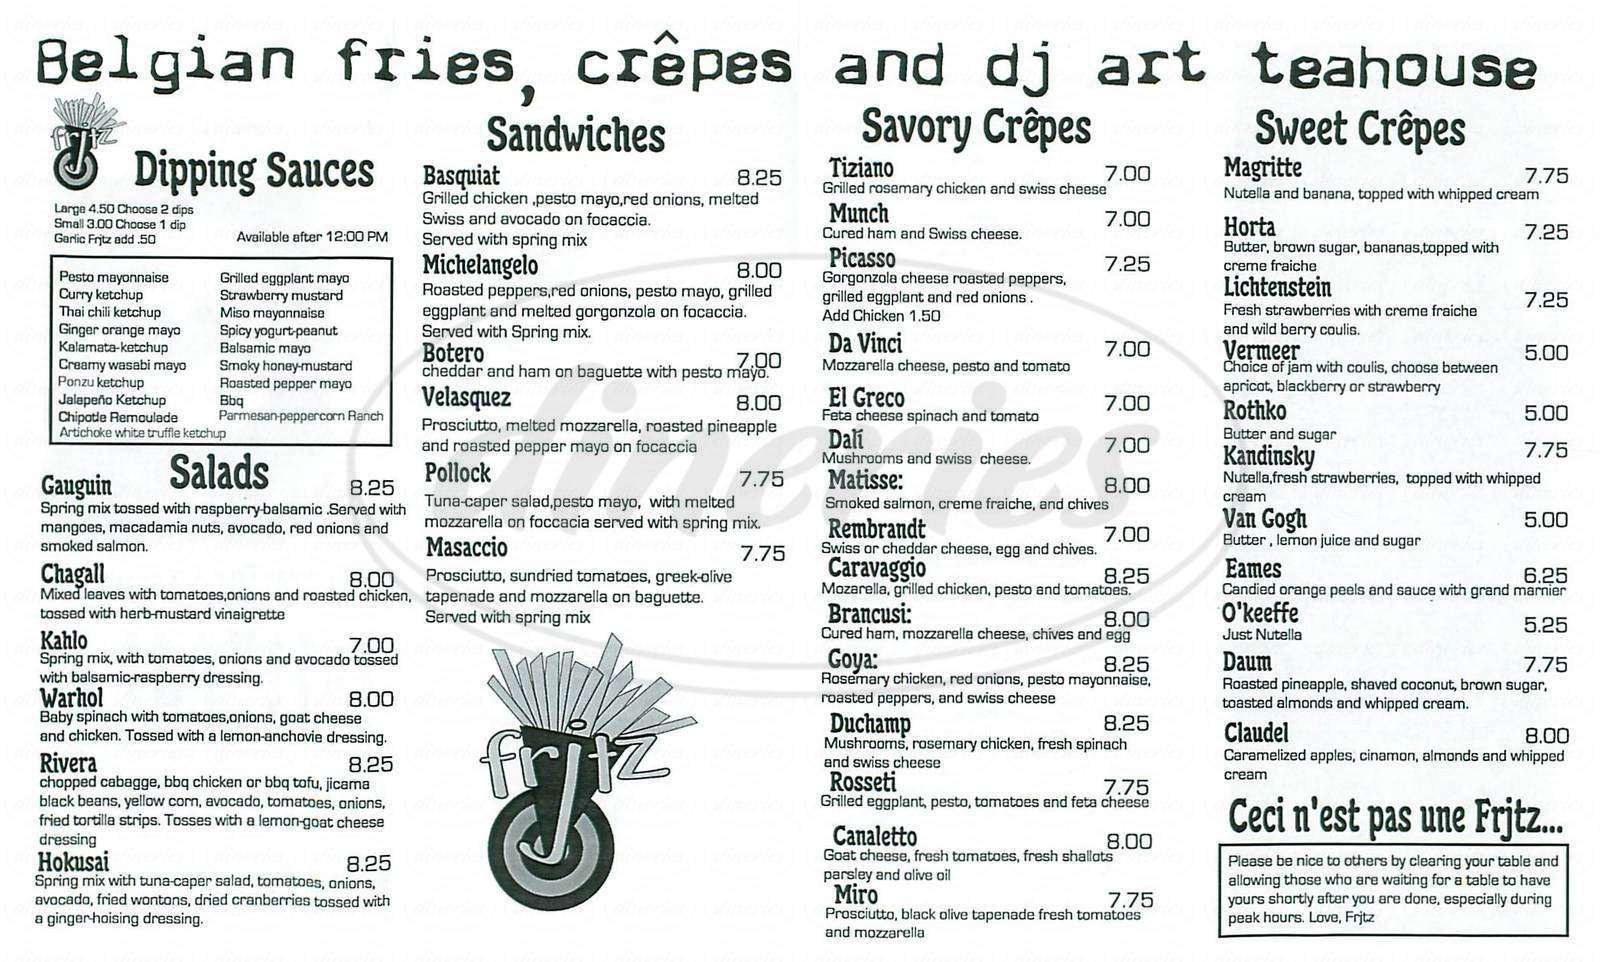 menu for Frjtz Fries